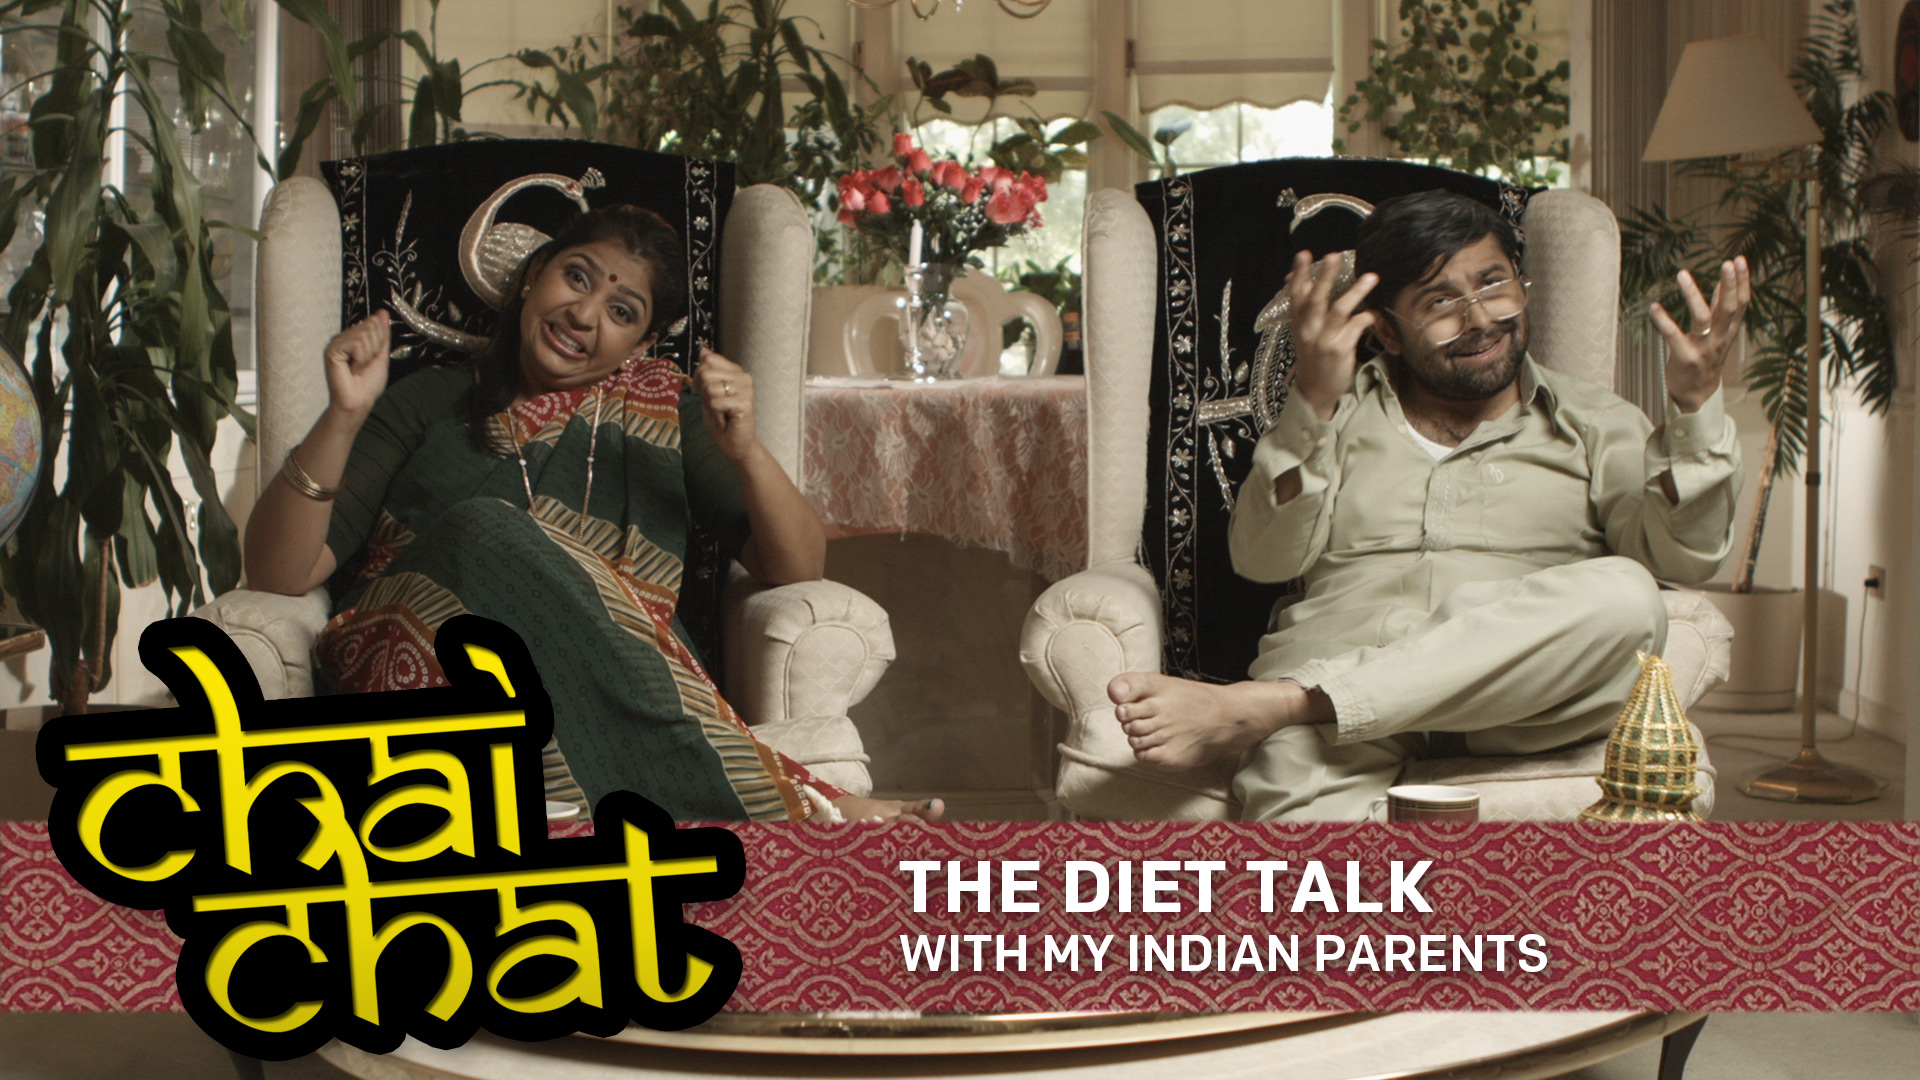 Chai Chat: The Diet Talk – With My Indian Parents